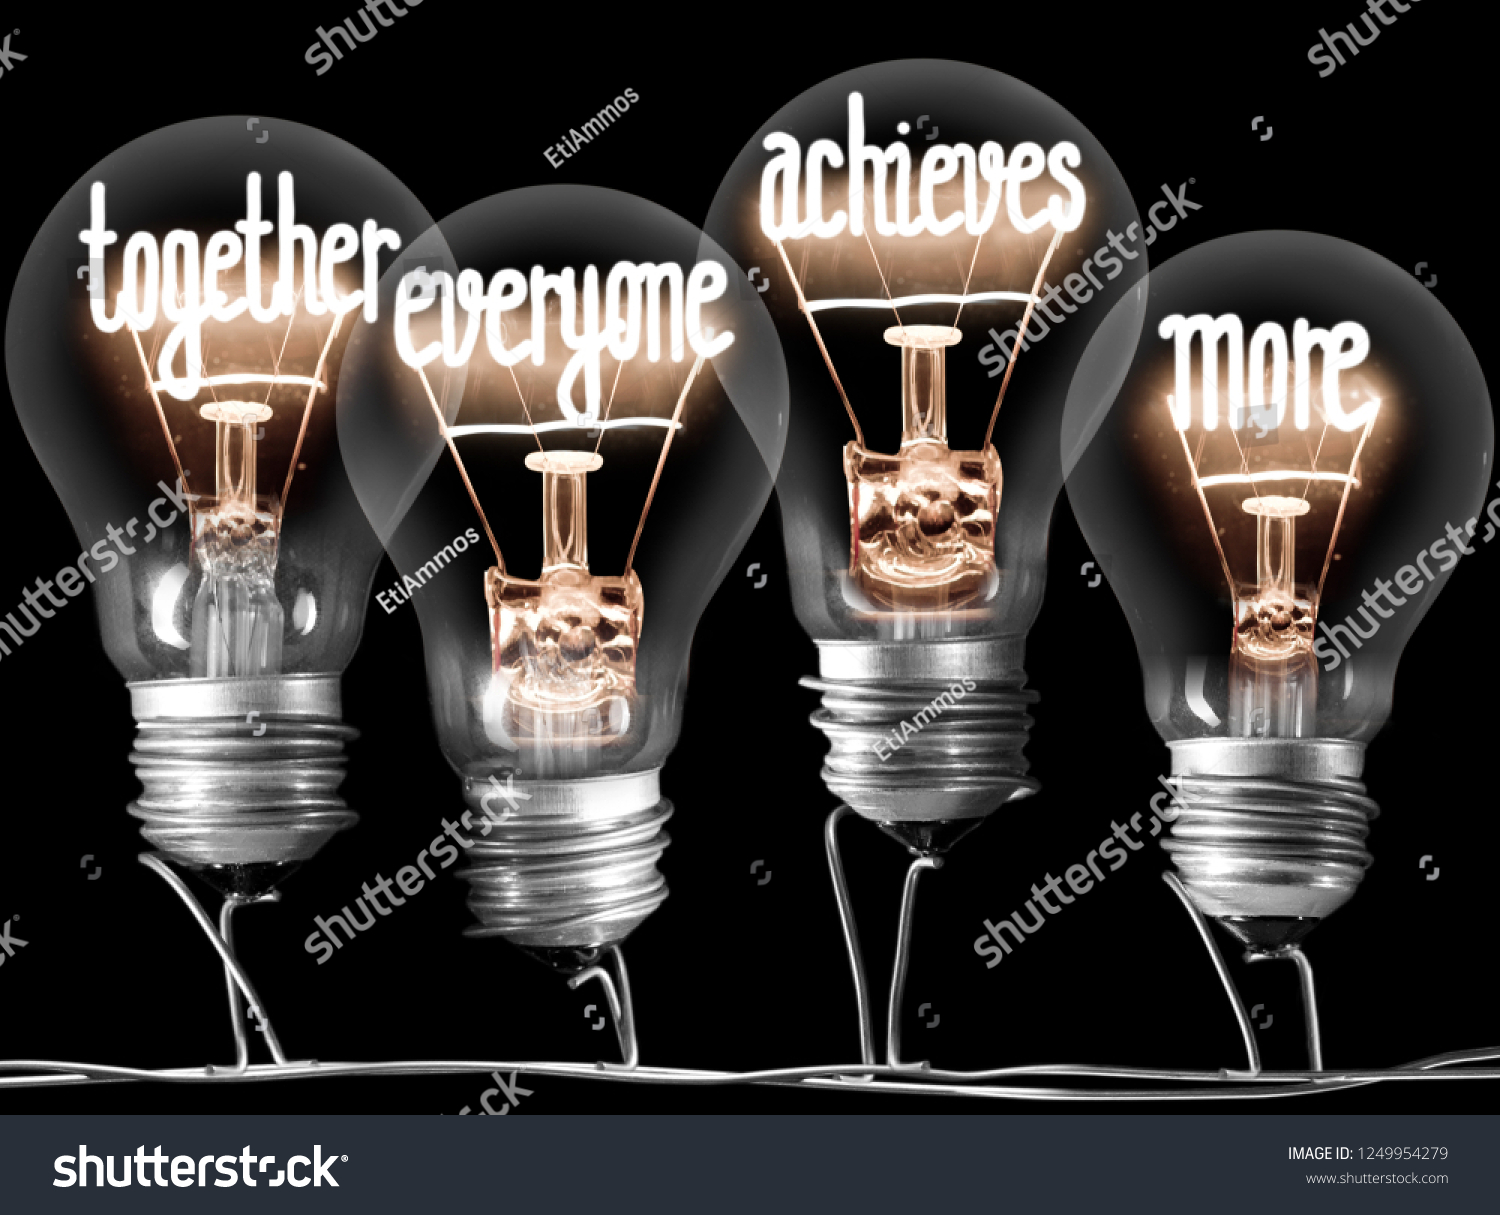 Photo of light bulbs with shining fibers in a shape of TOGETHER, EVERYONE, ACHIEVES, MORE concept words isolated on black background #1249954279